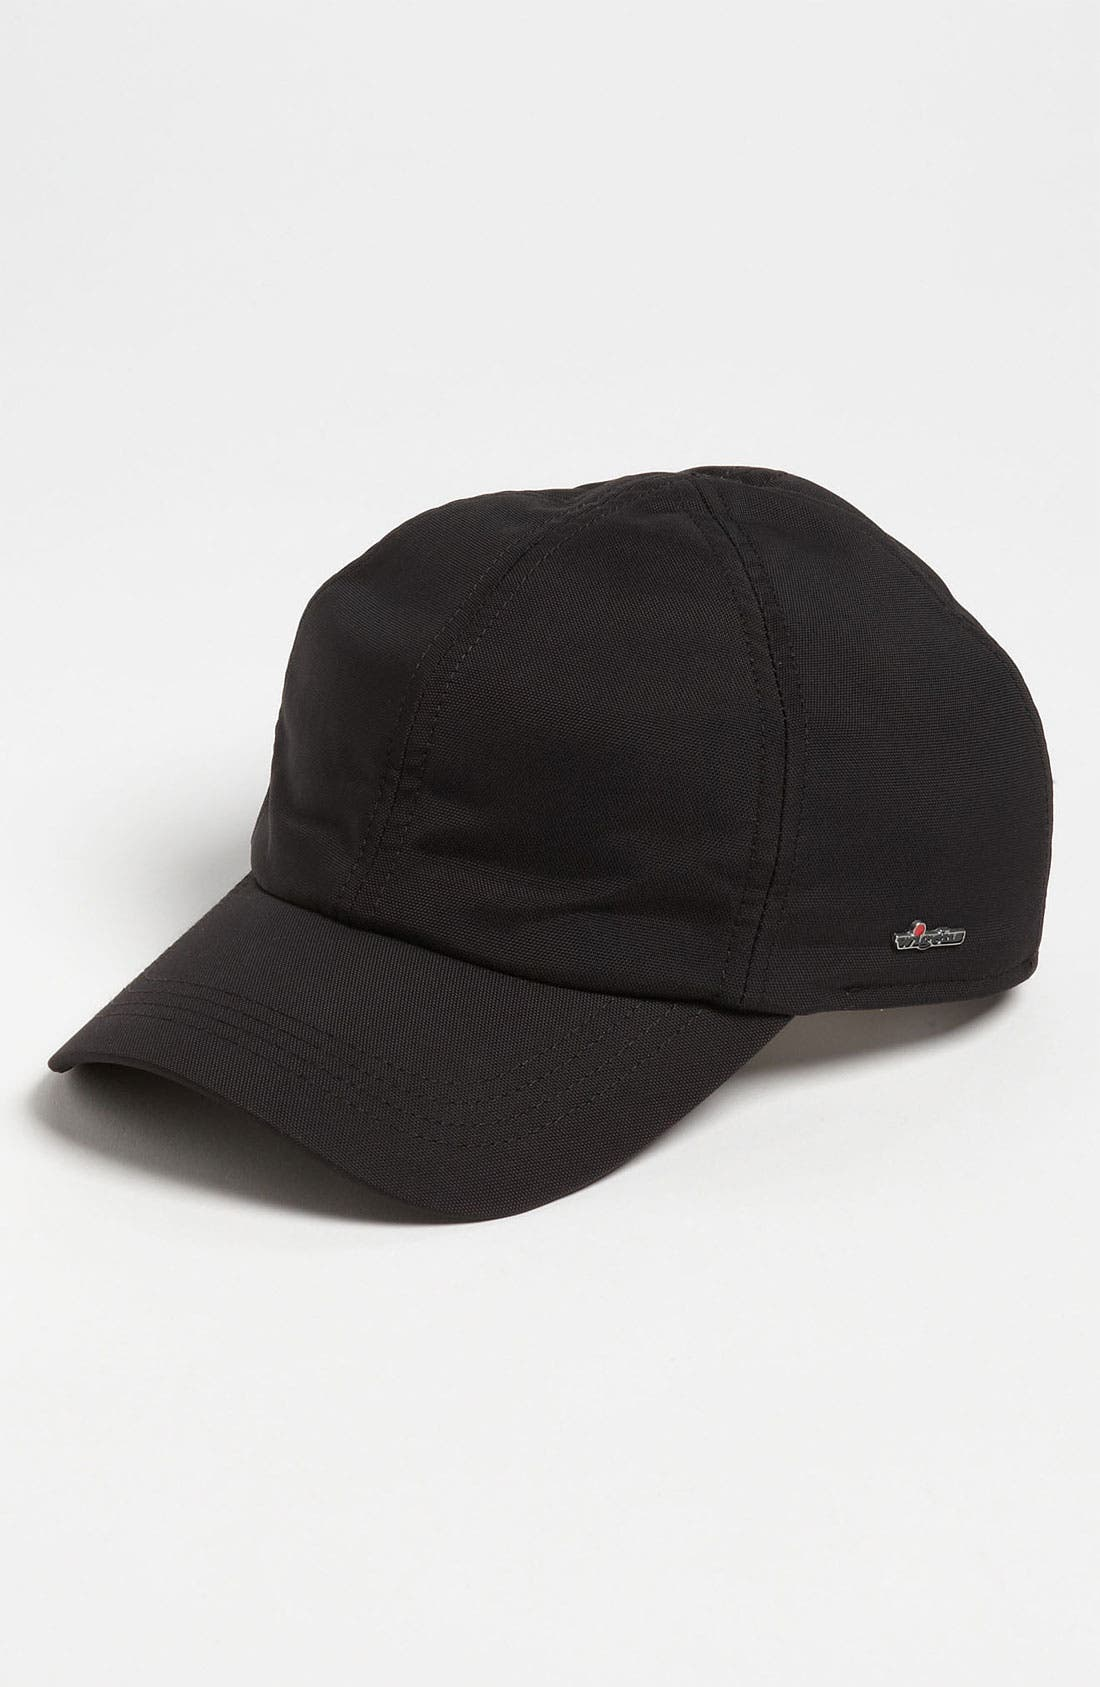 'Martin' Baseball Cap,                             Main thumbnail 1, color,                             Black